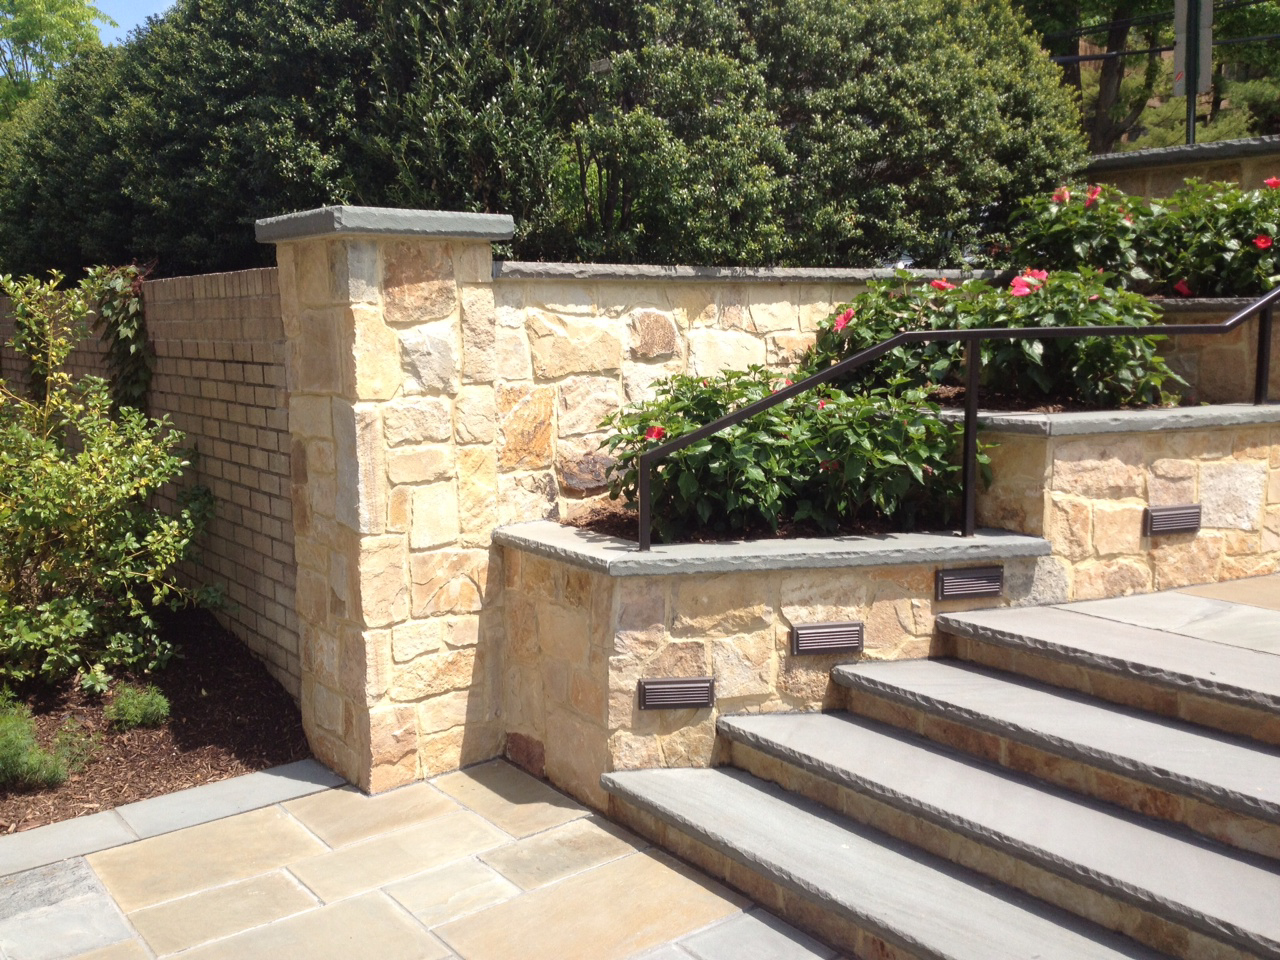 Bluestone staircase with stone retaining wall and colorful planting in Lloyd Neck